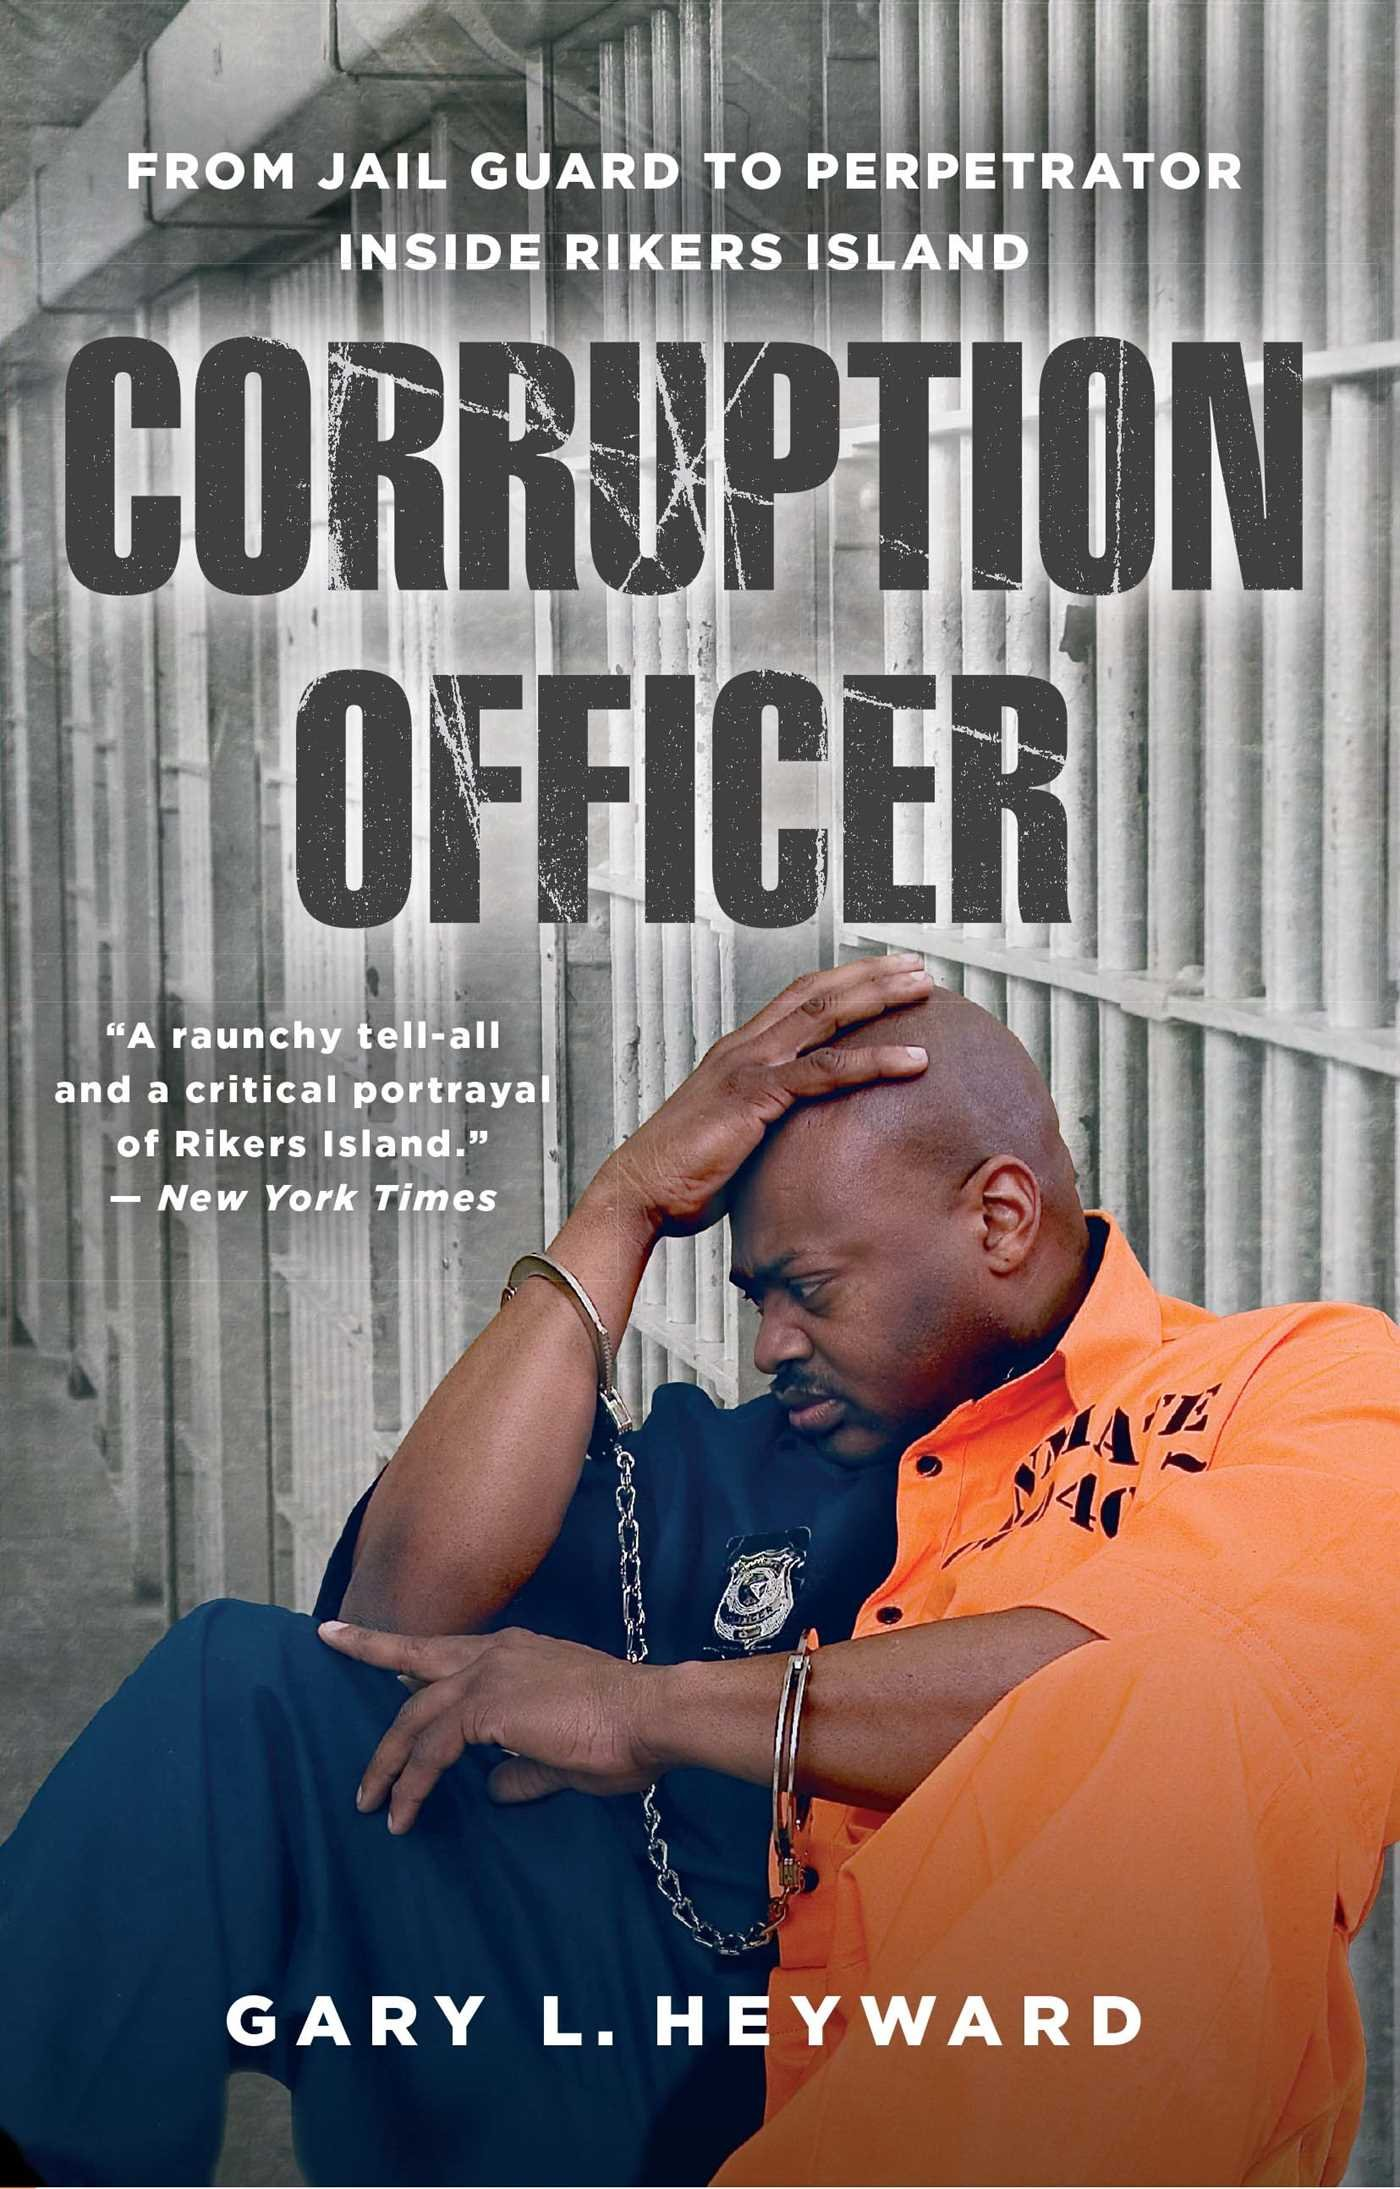 Corruption Officer: From Jail Guard to Perpetrator Inside Rikers Island